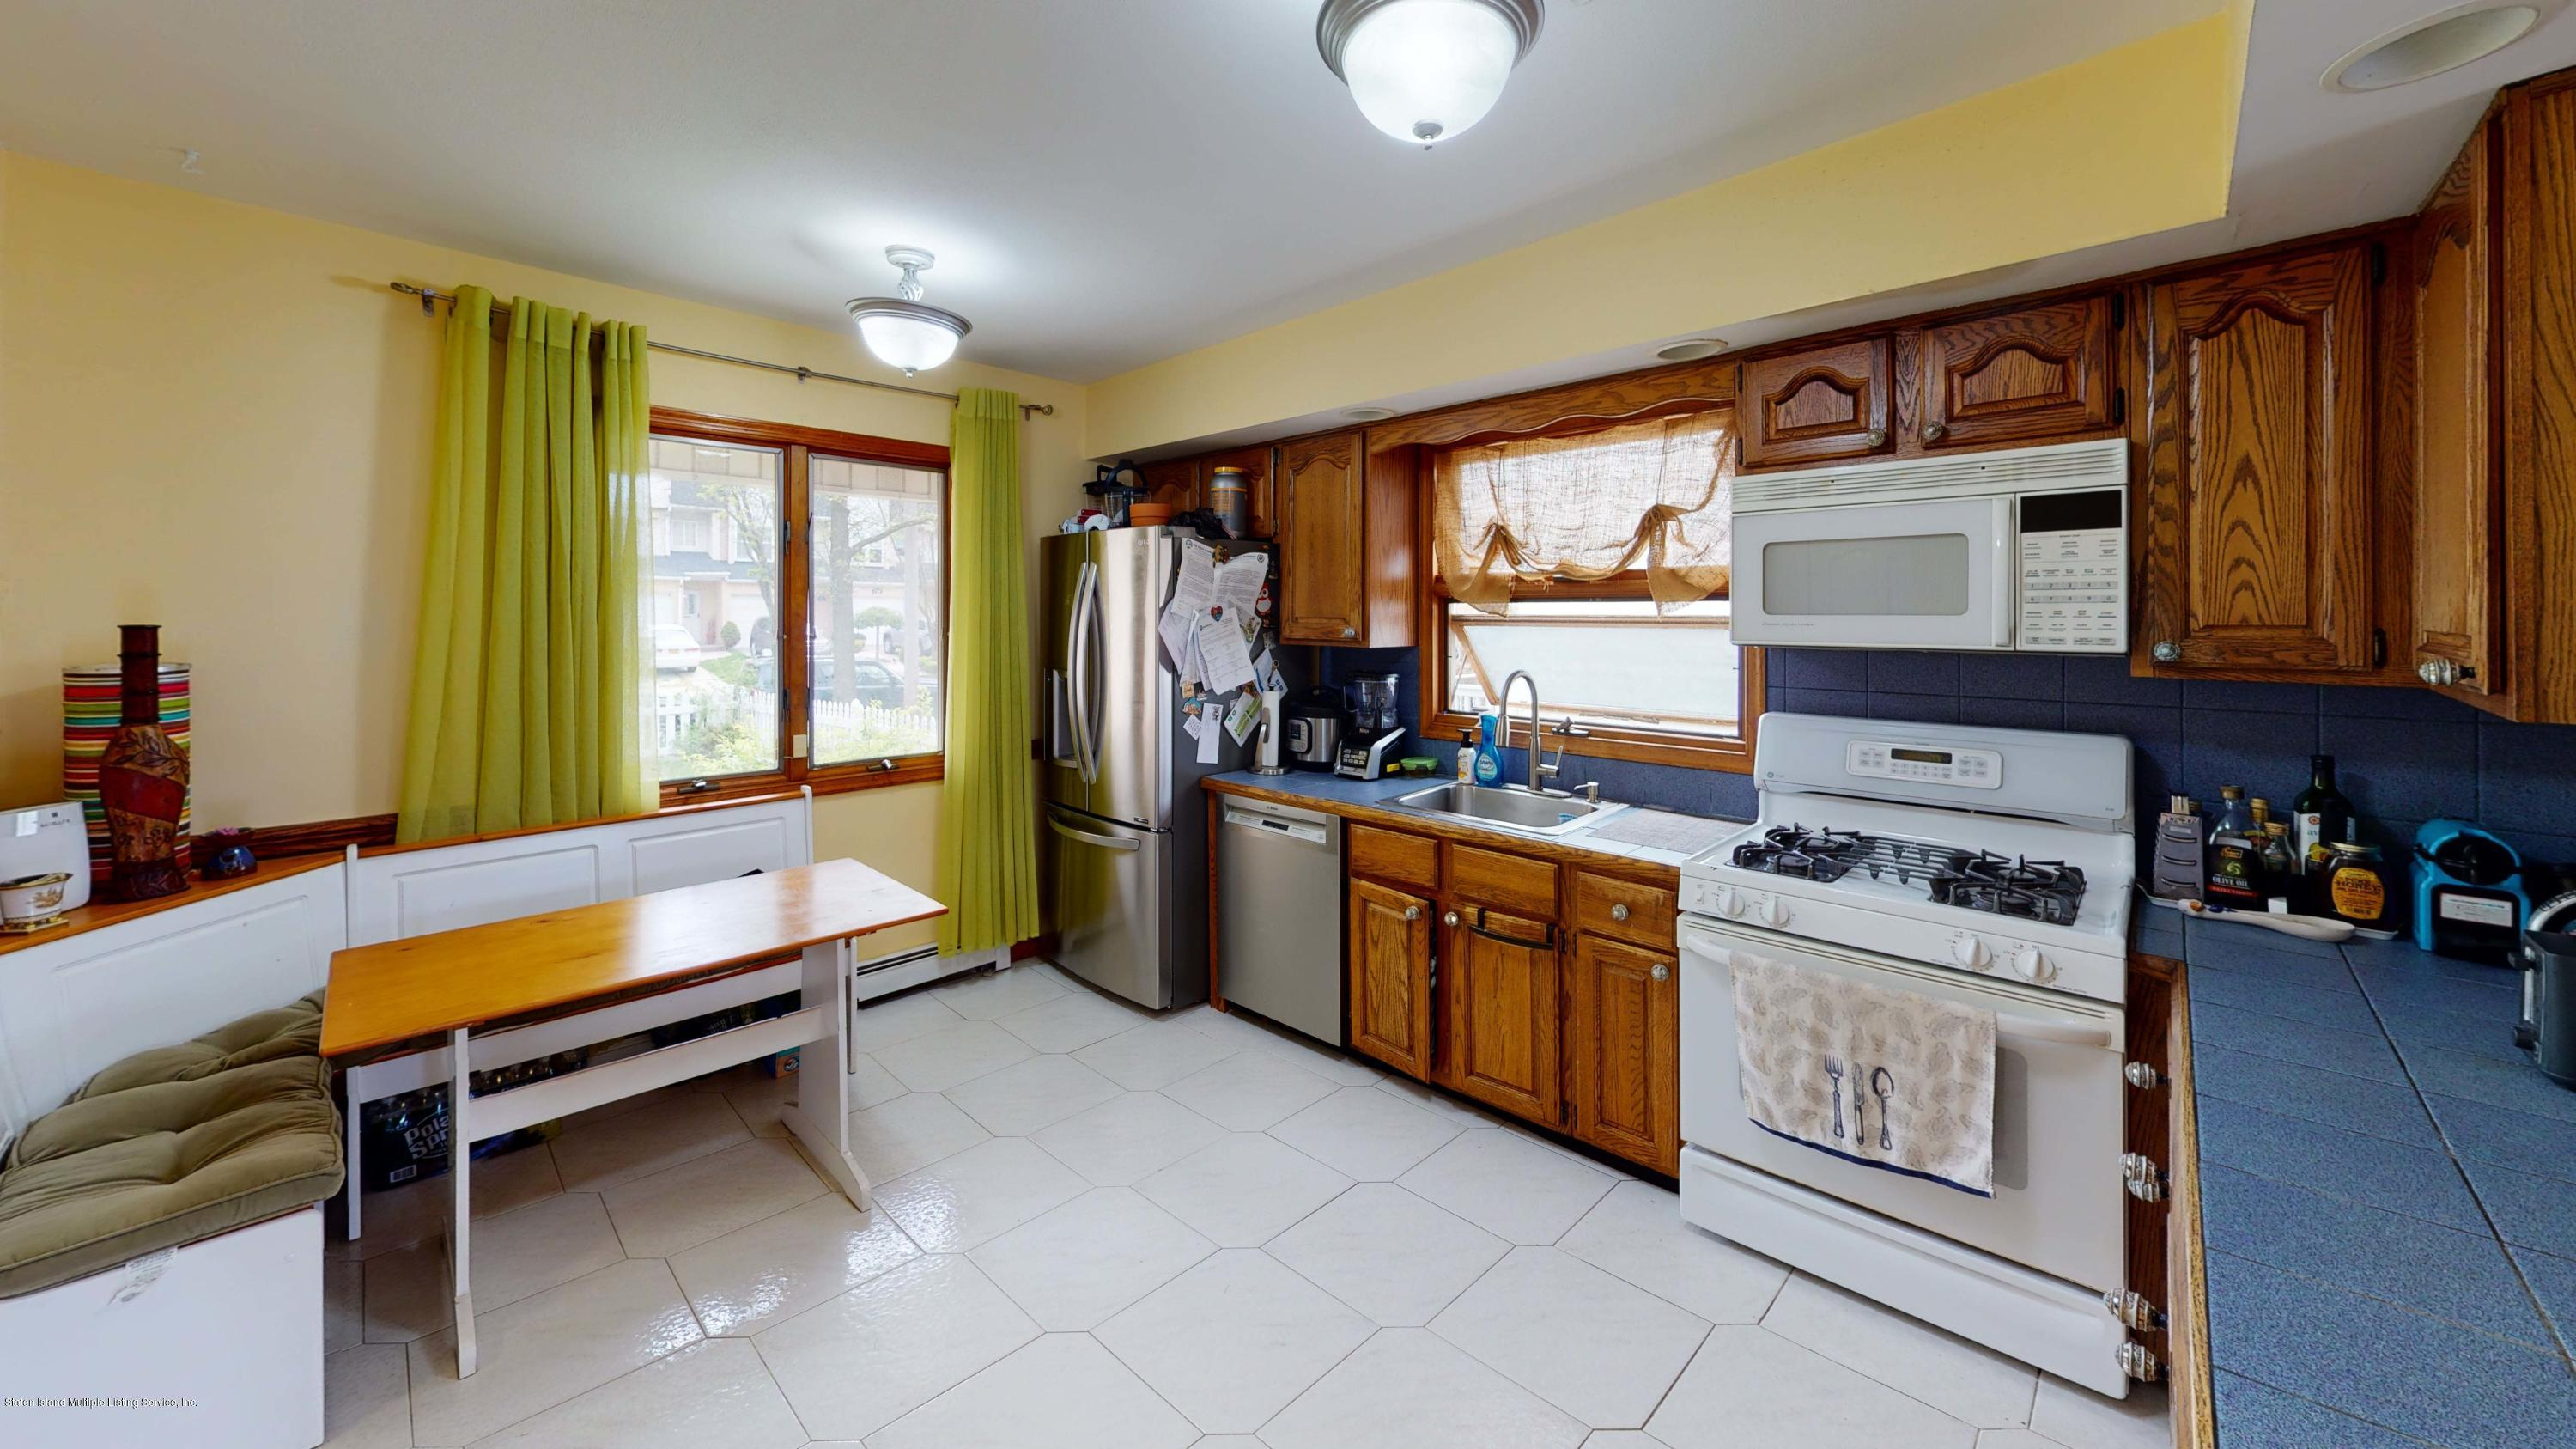 Single Family - Detached 129 Lucille Avenue  Staten Island, NY 10309, MLS-1135888-5